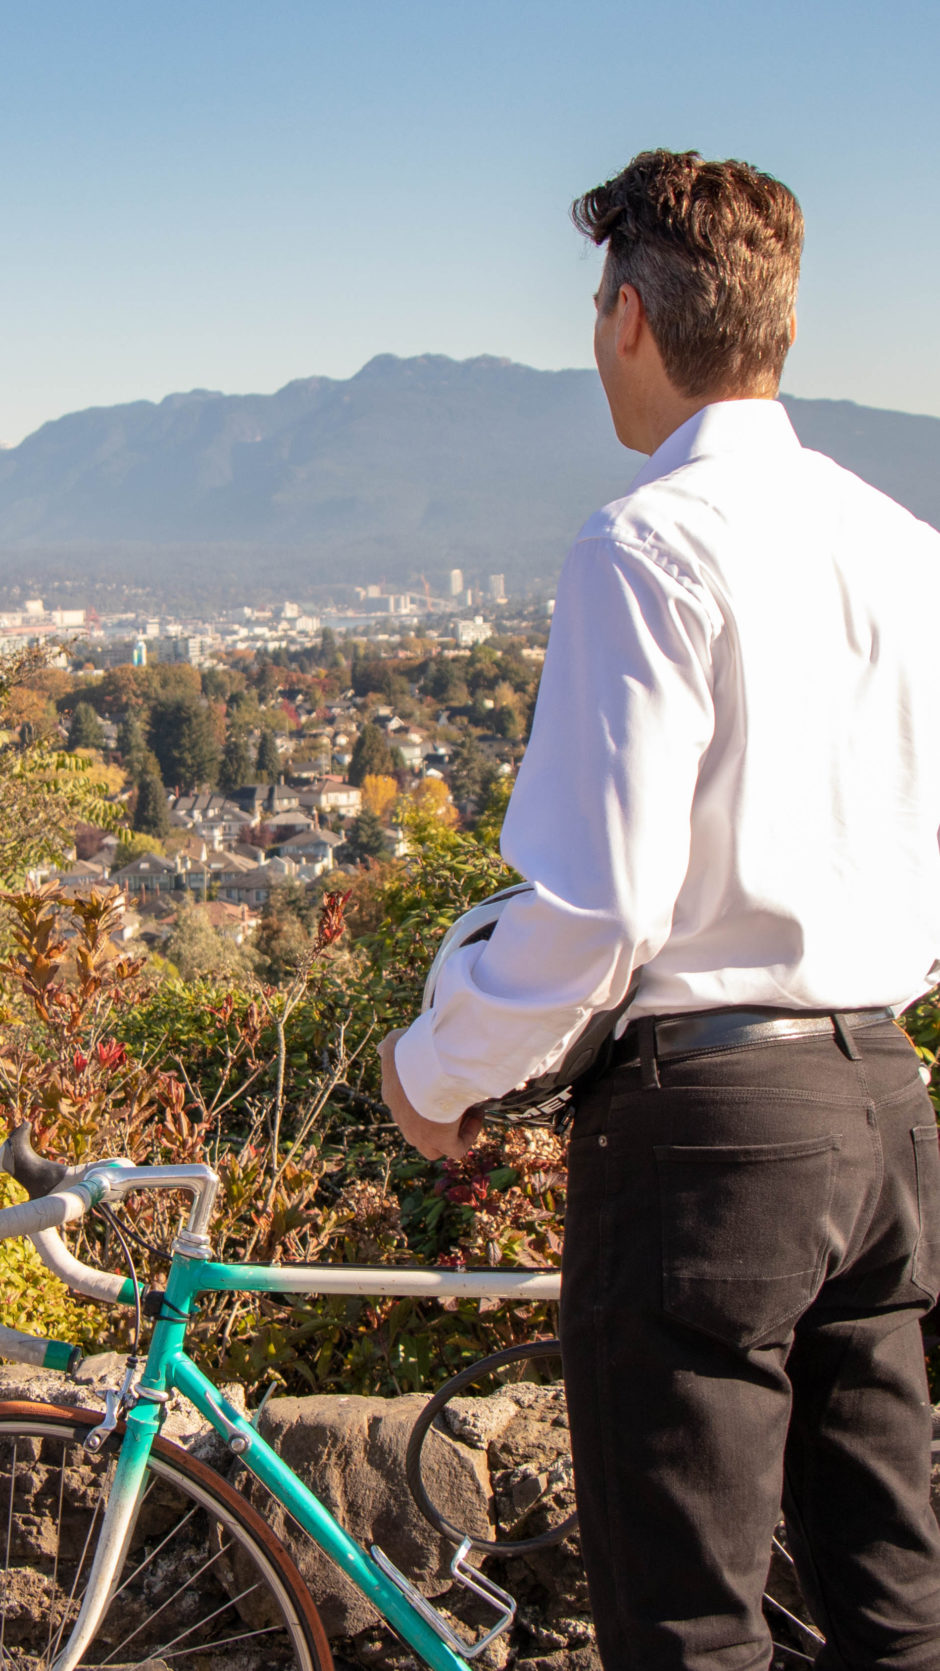 Gregor Robertson is looking at the skyline while standing next to a bicycle.